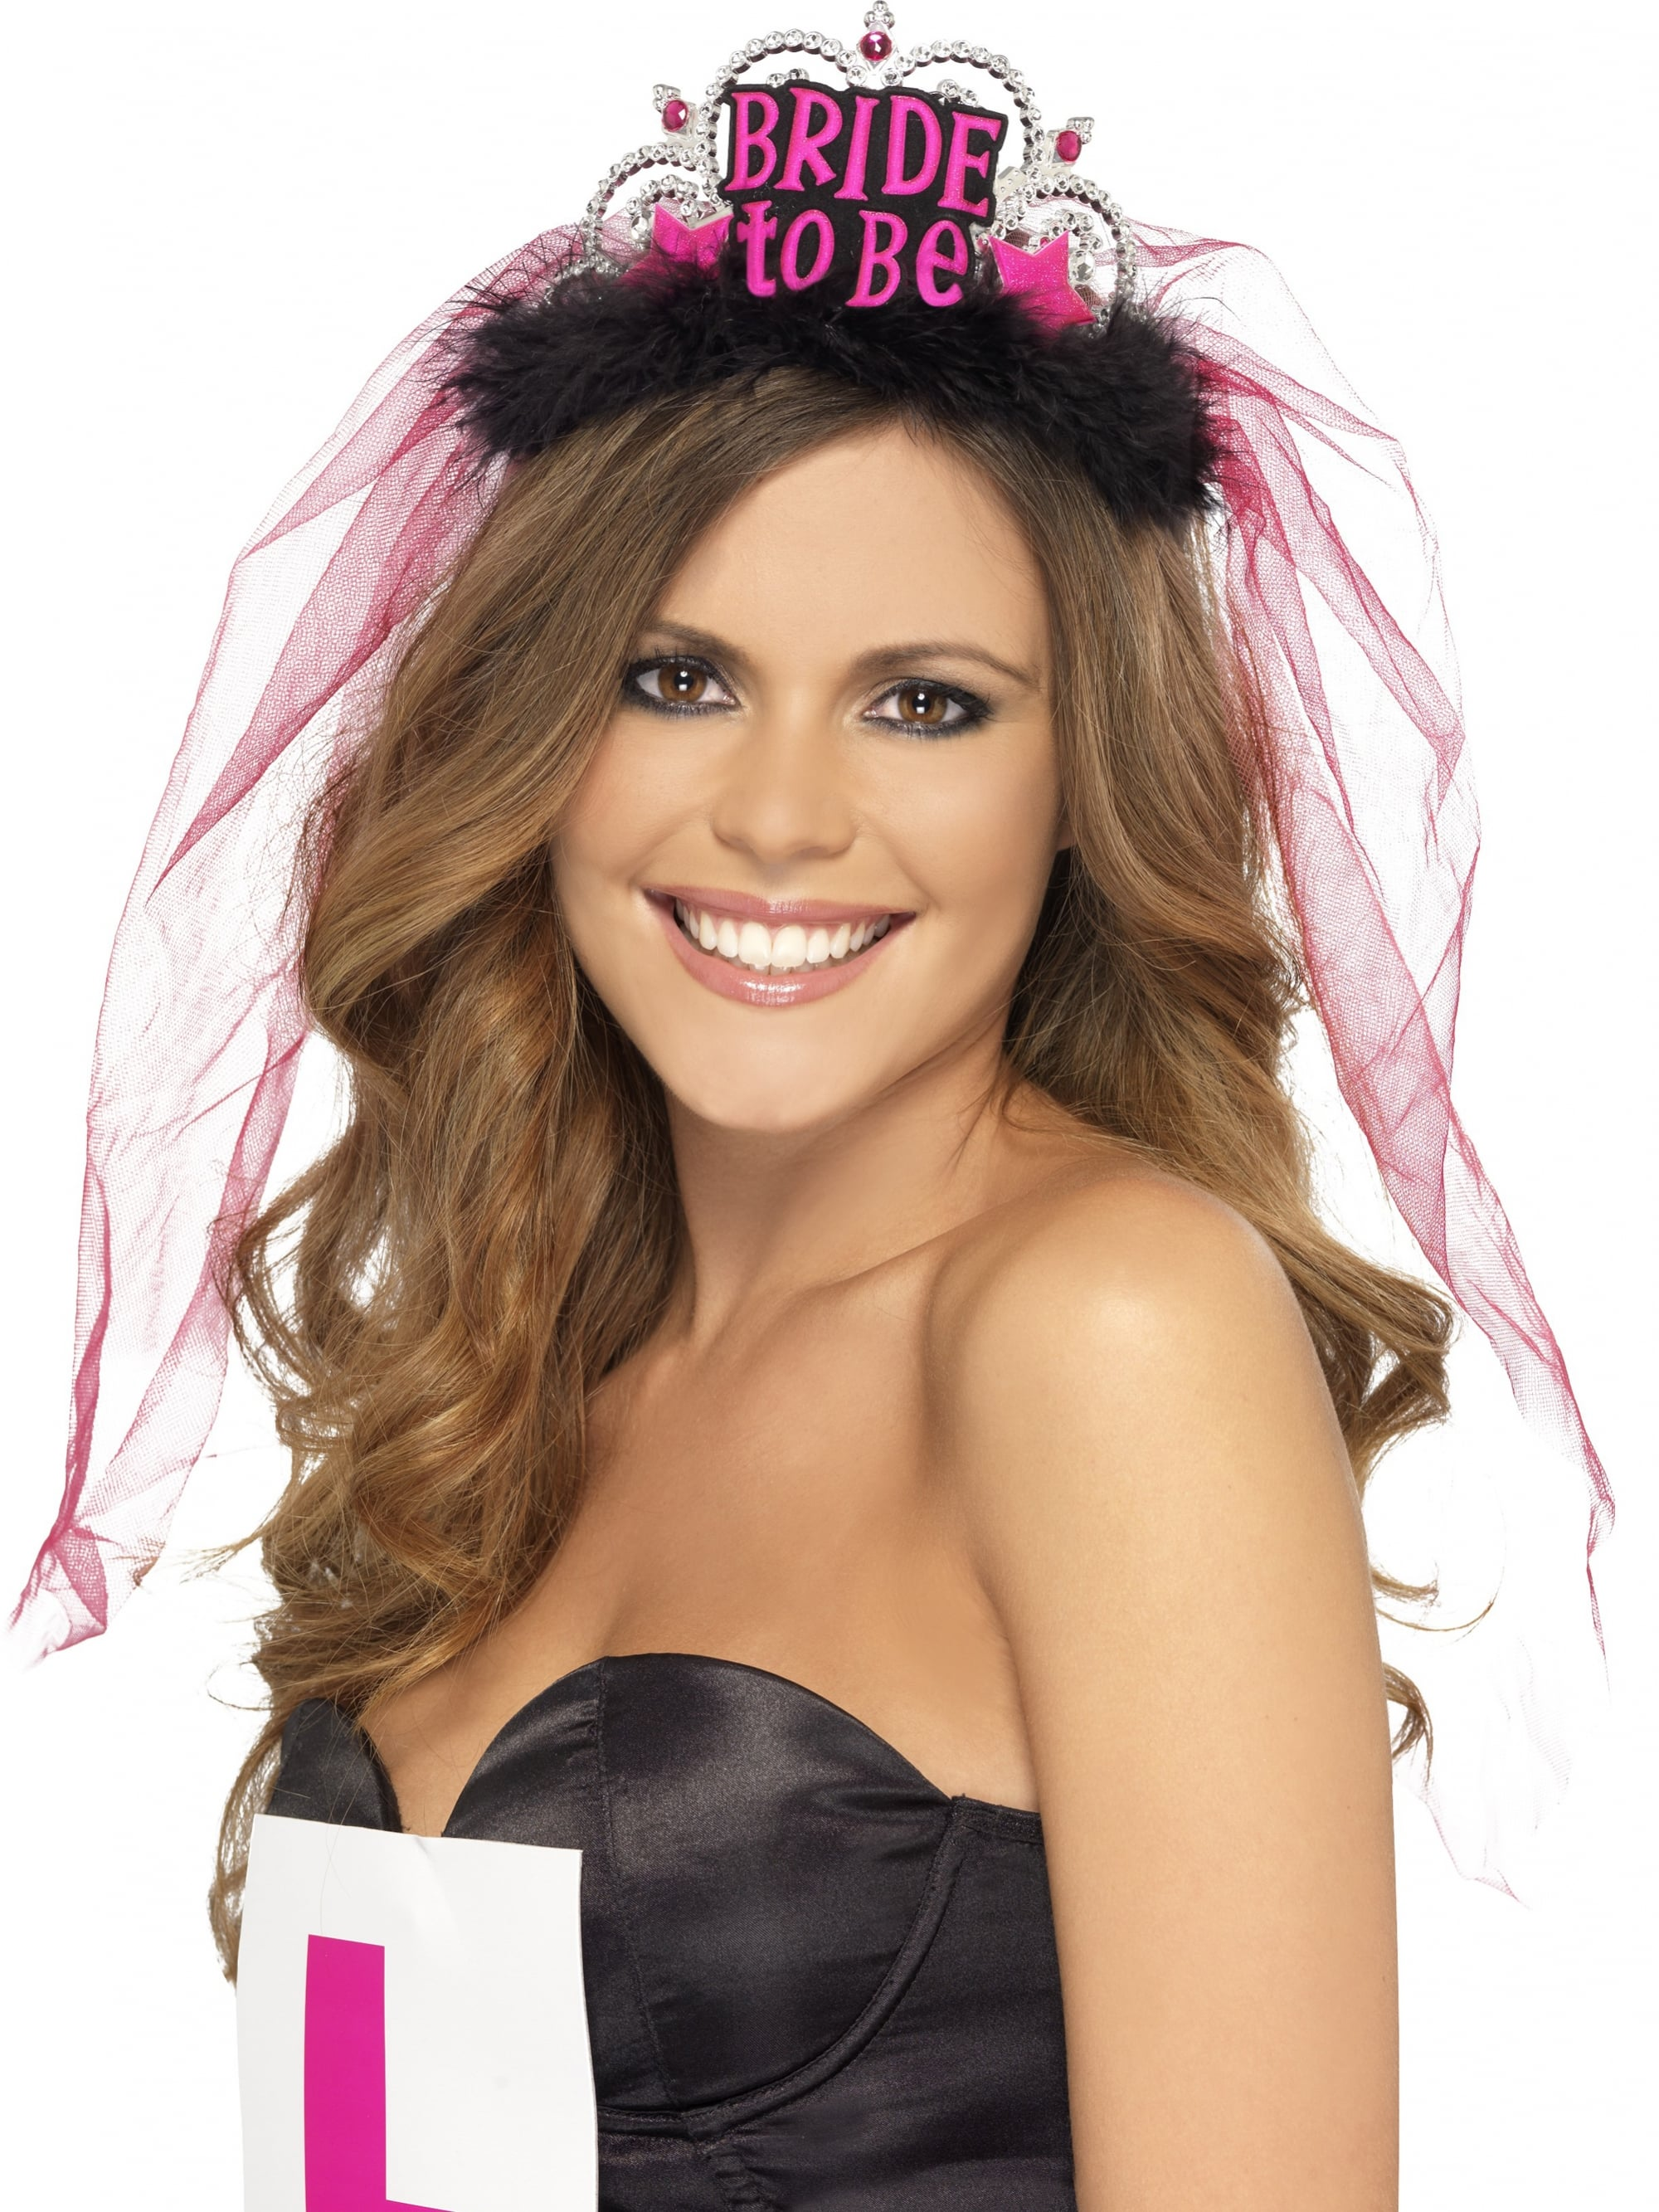 Bridal tiaras and veils - Bride To Be Tiara With Pink Veil